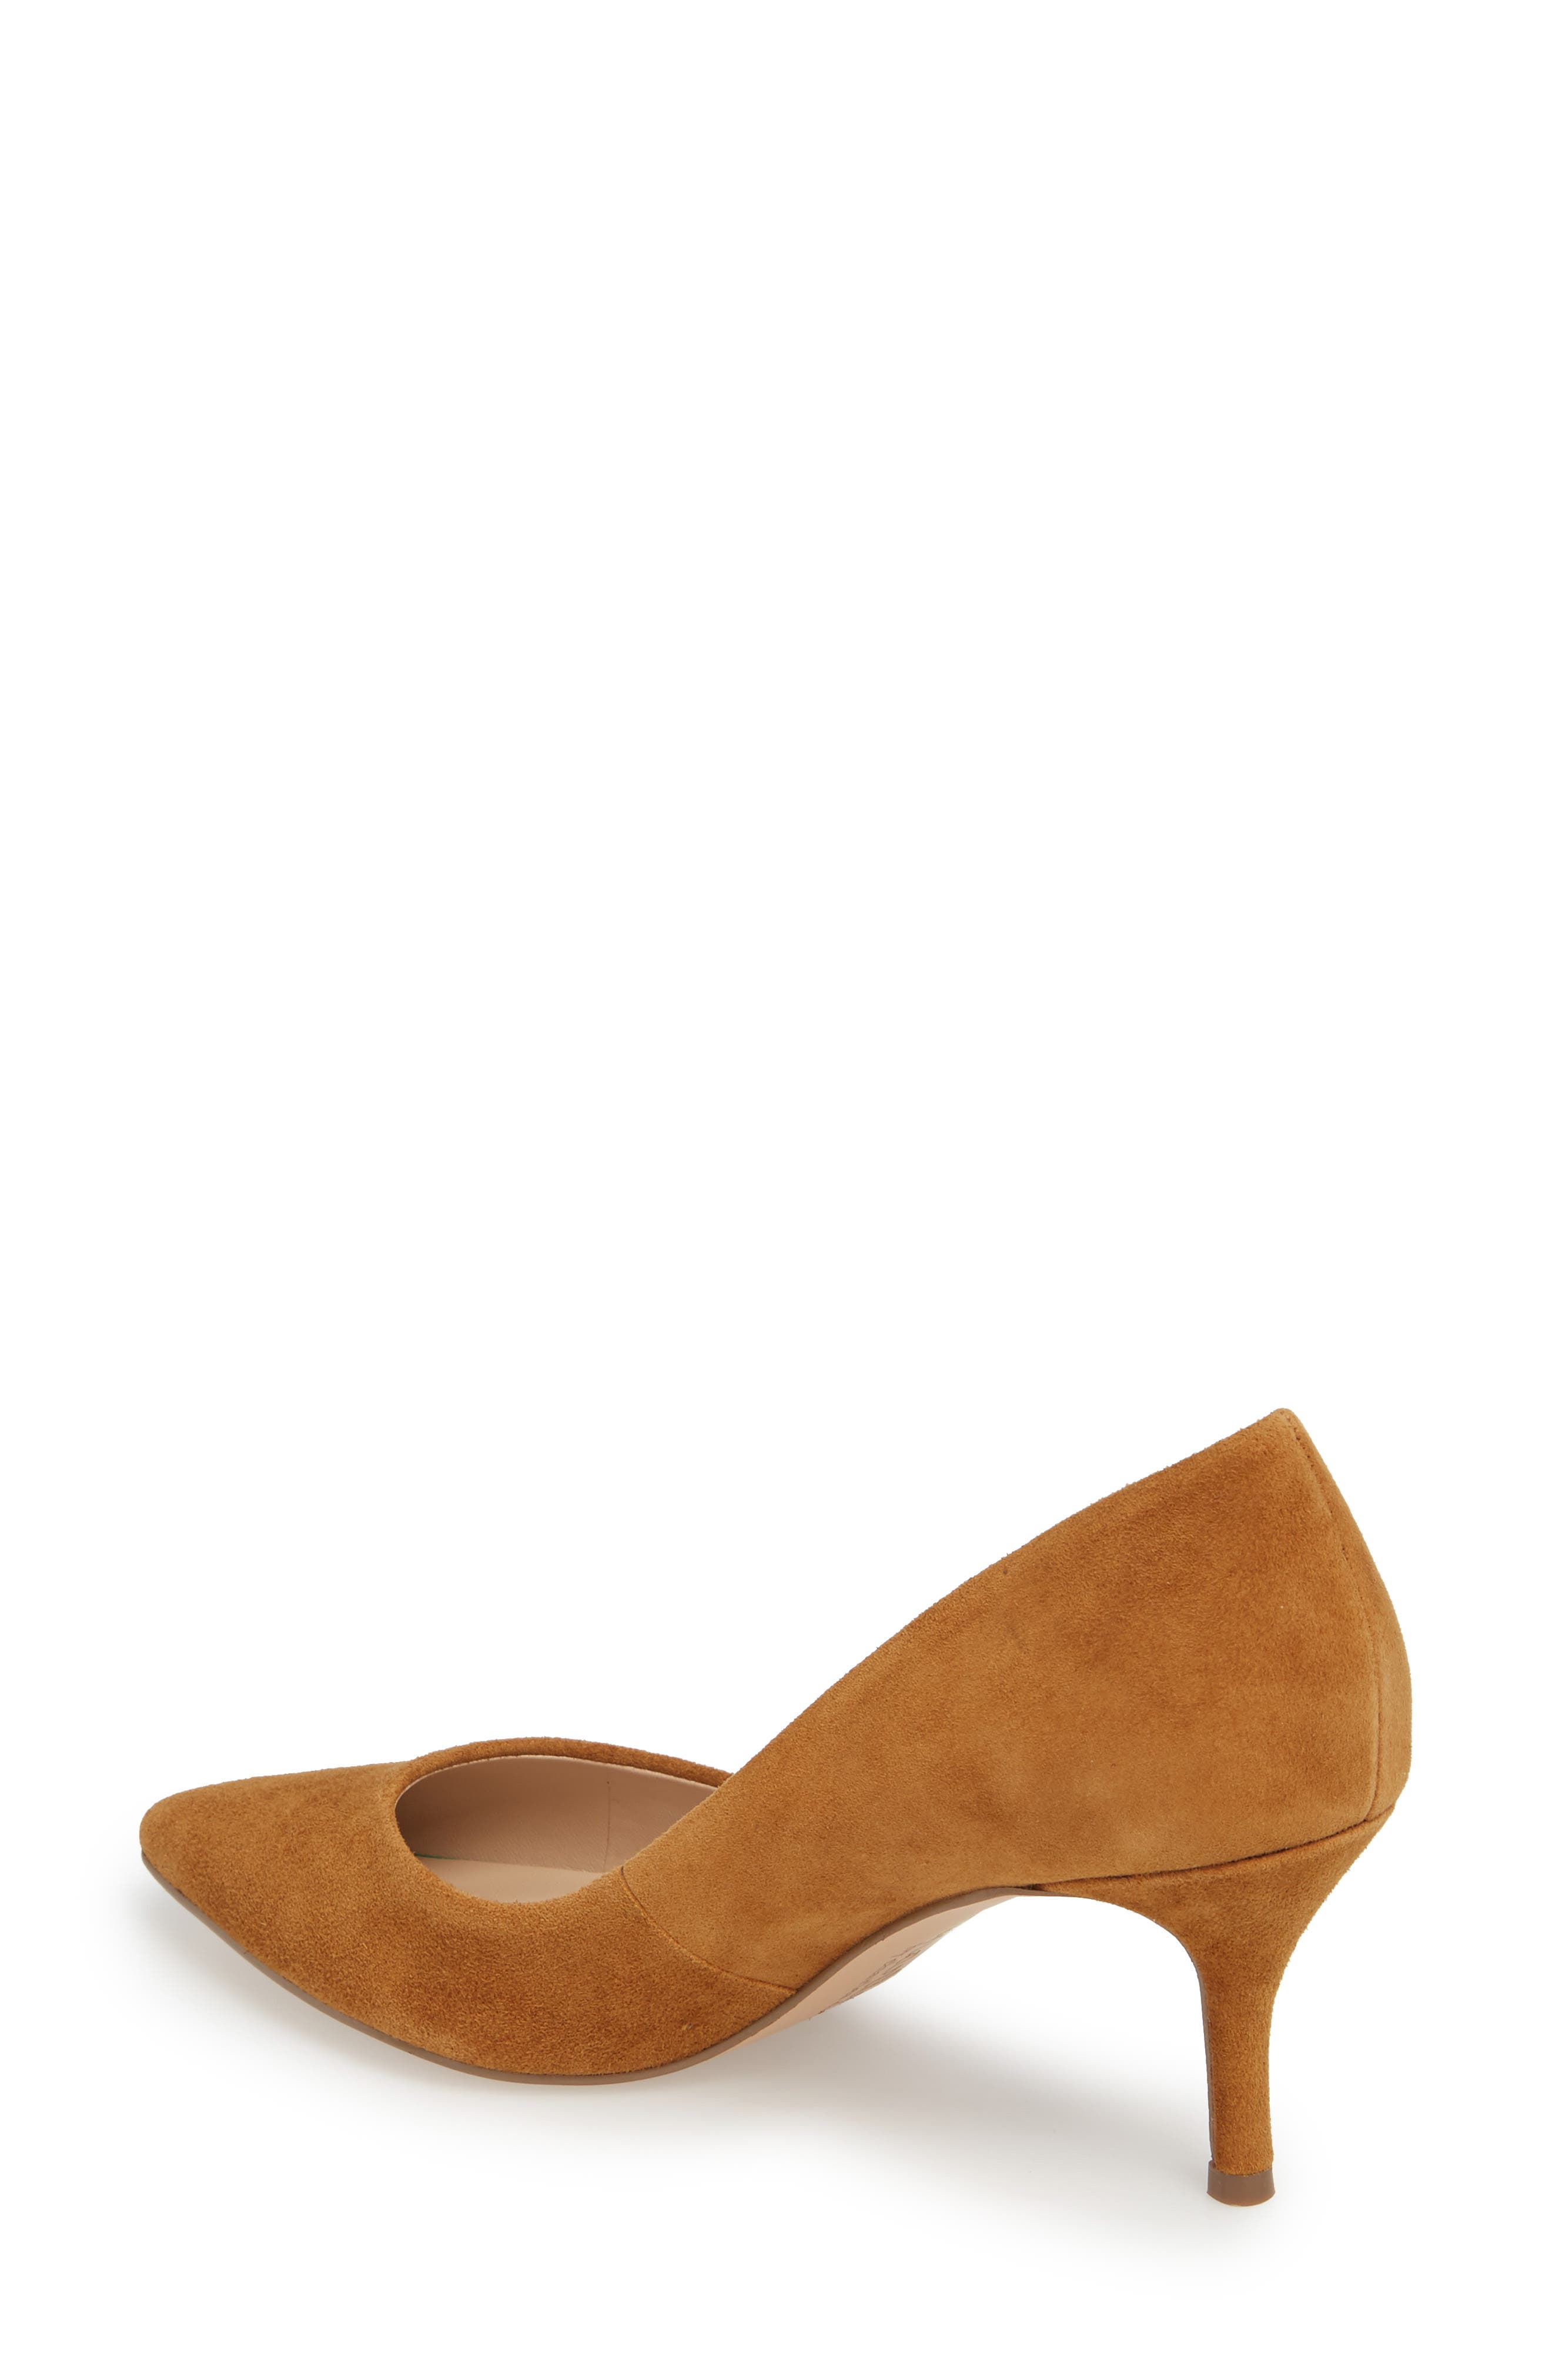 Addie Pump,                             Alternate thumbnail 2, color,                             AMBER SUEDE